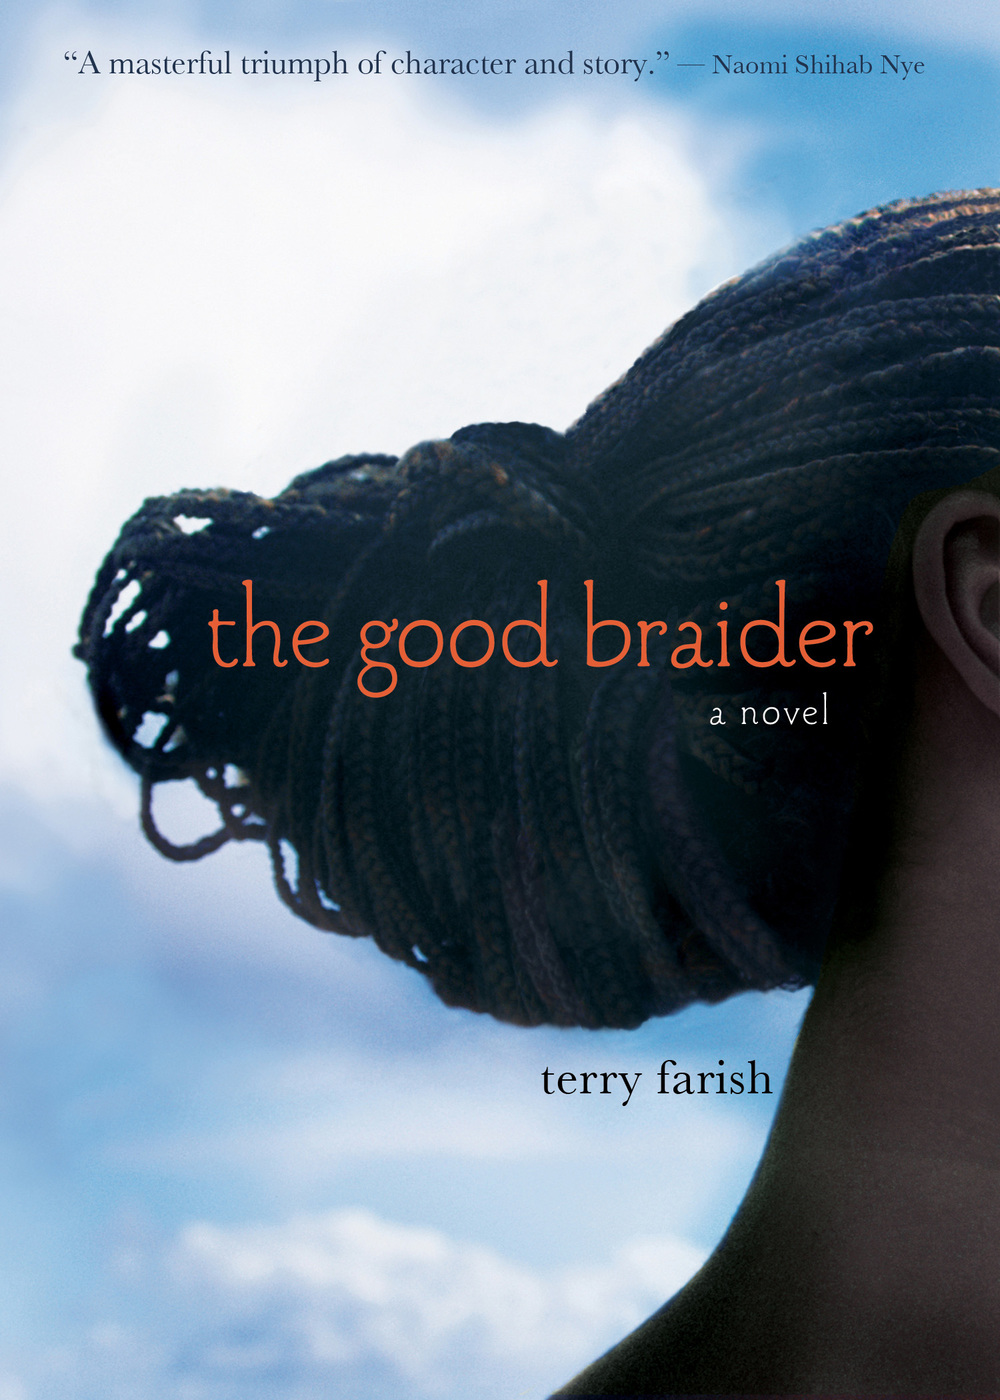 The Good Braider by Terry Farish Amazon | Goodreads